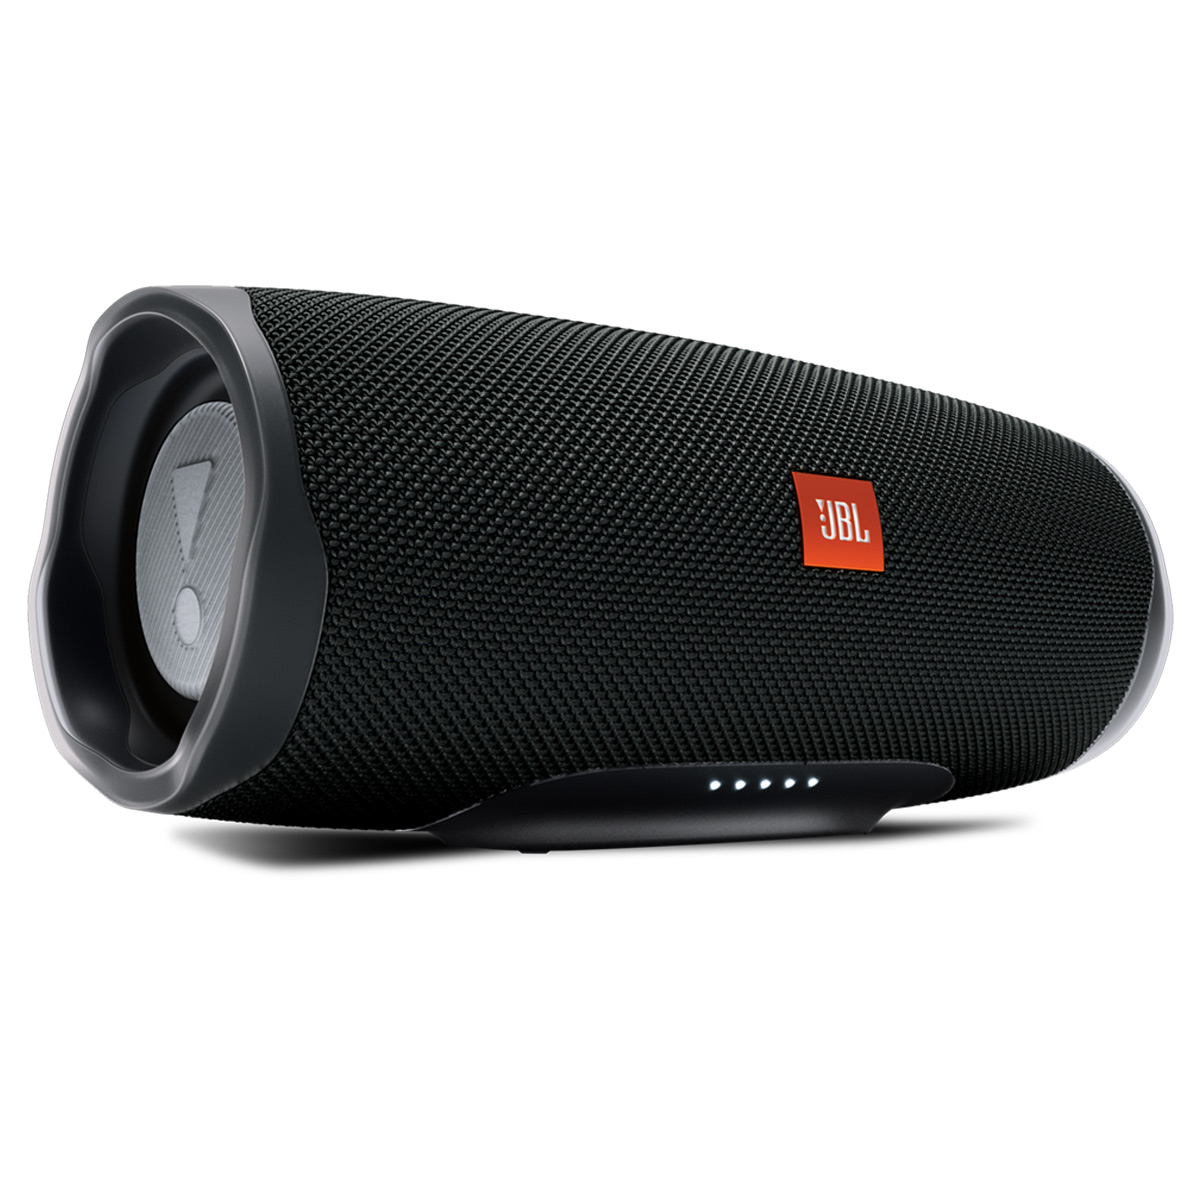 JBL Charge 4 Portable Waterproof Wireless Bluetooth Speaker + $30 GC